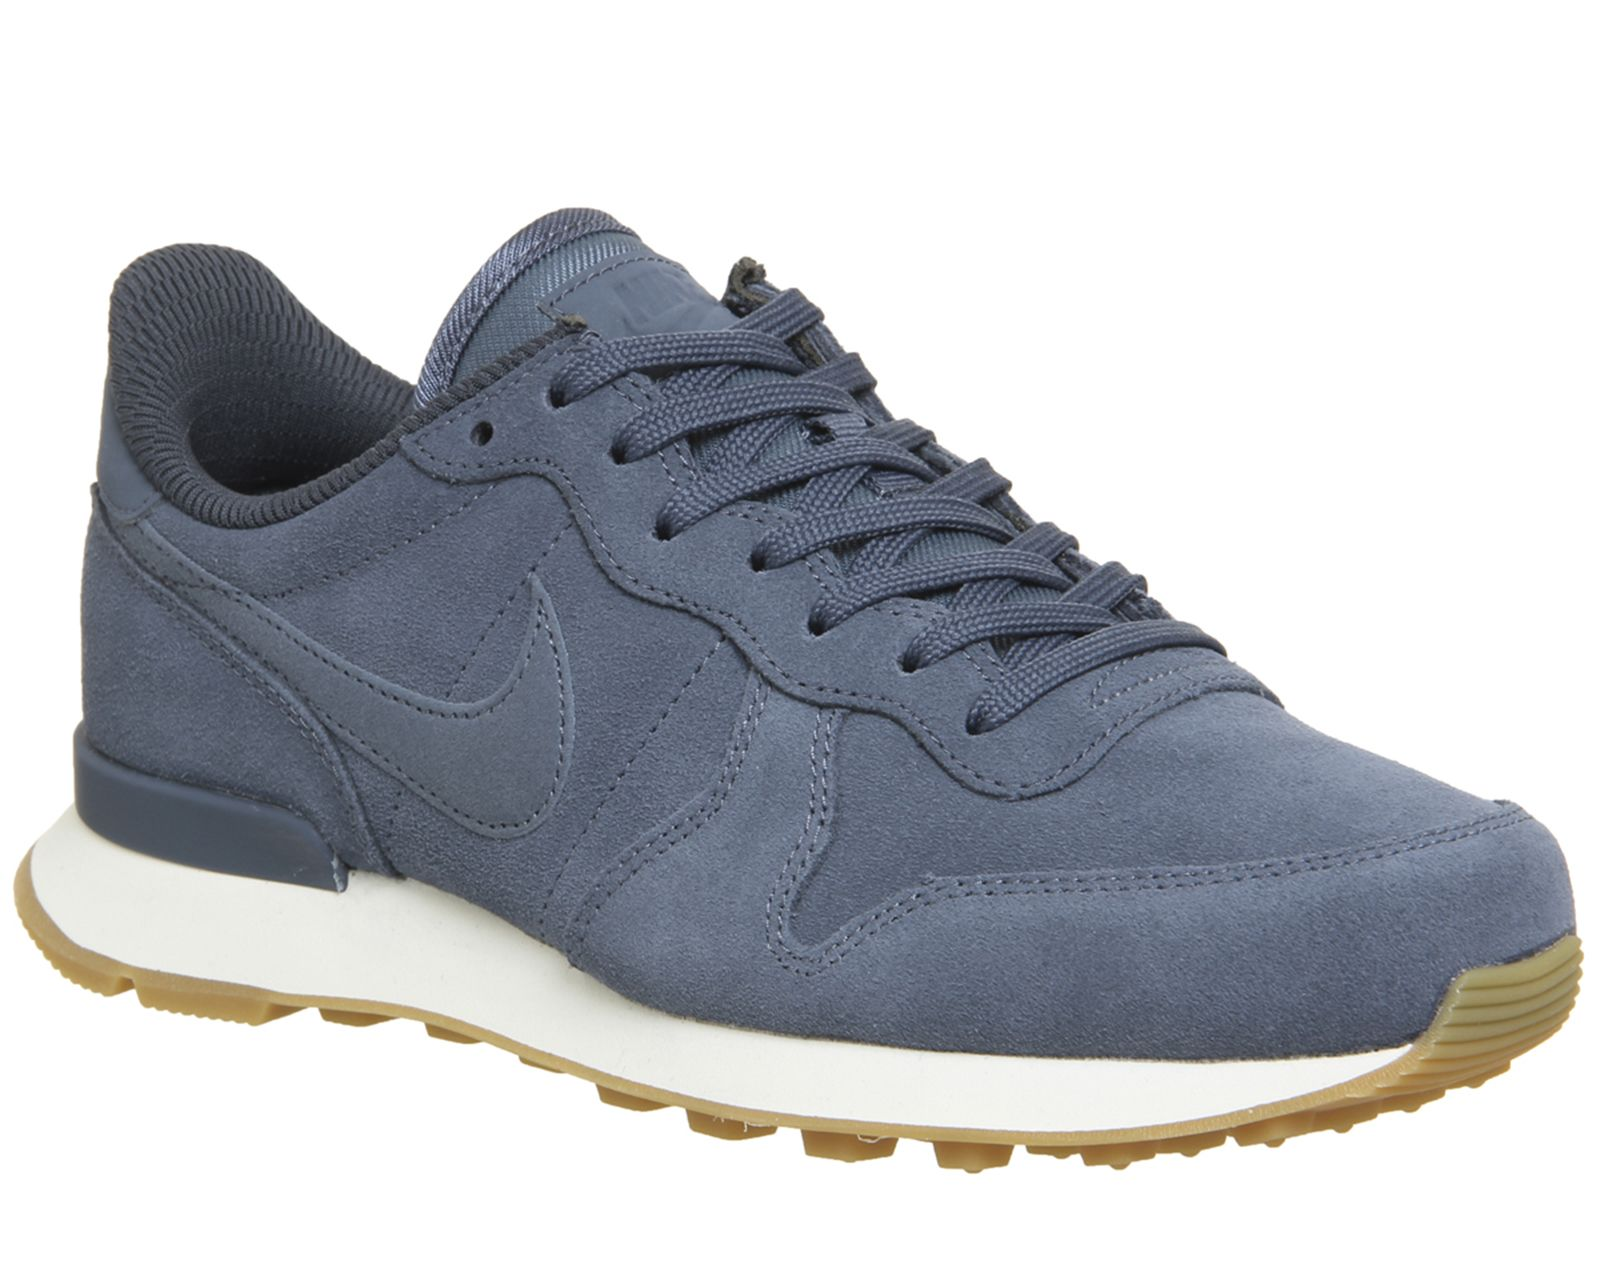 Nike Internationalist Trainers in Diffused Blue, £70, Office